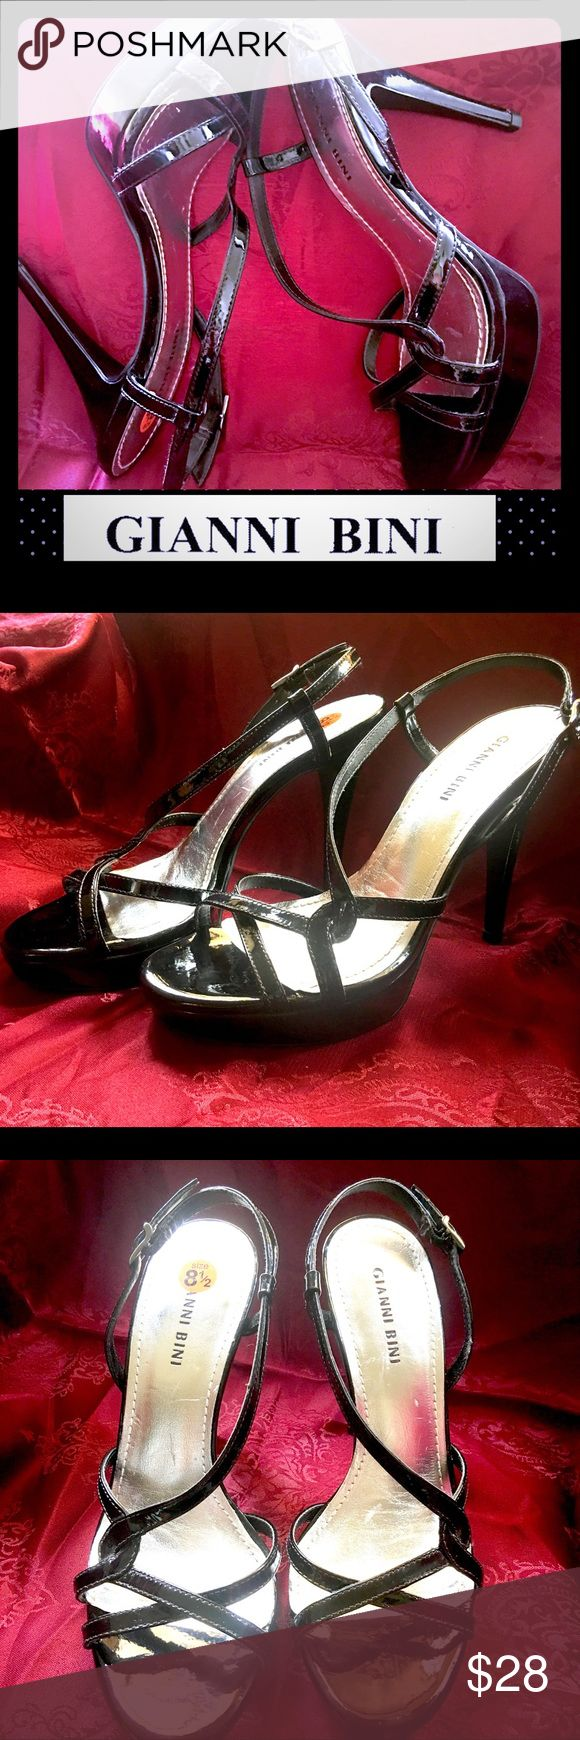 Gianni Bini Strappy Patent Leather Stilettos 8.5M Glamorous Gianni Bini black patent leather Stilettos, size 8.5M. Measures 5 inches from floor to include the platform. The inner soles are silver. Other than a few small scuffs, this stunning pair of heels is in excellent condition. There is hardly any evidence of use on the soles. Feel free to ask any questions before purchasing. Thank you!🤗 Gianni Bini Shoes Heels